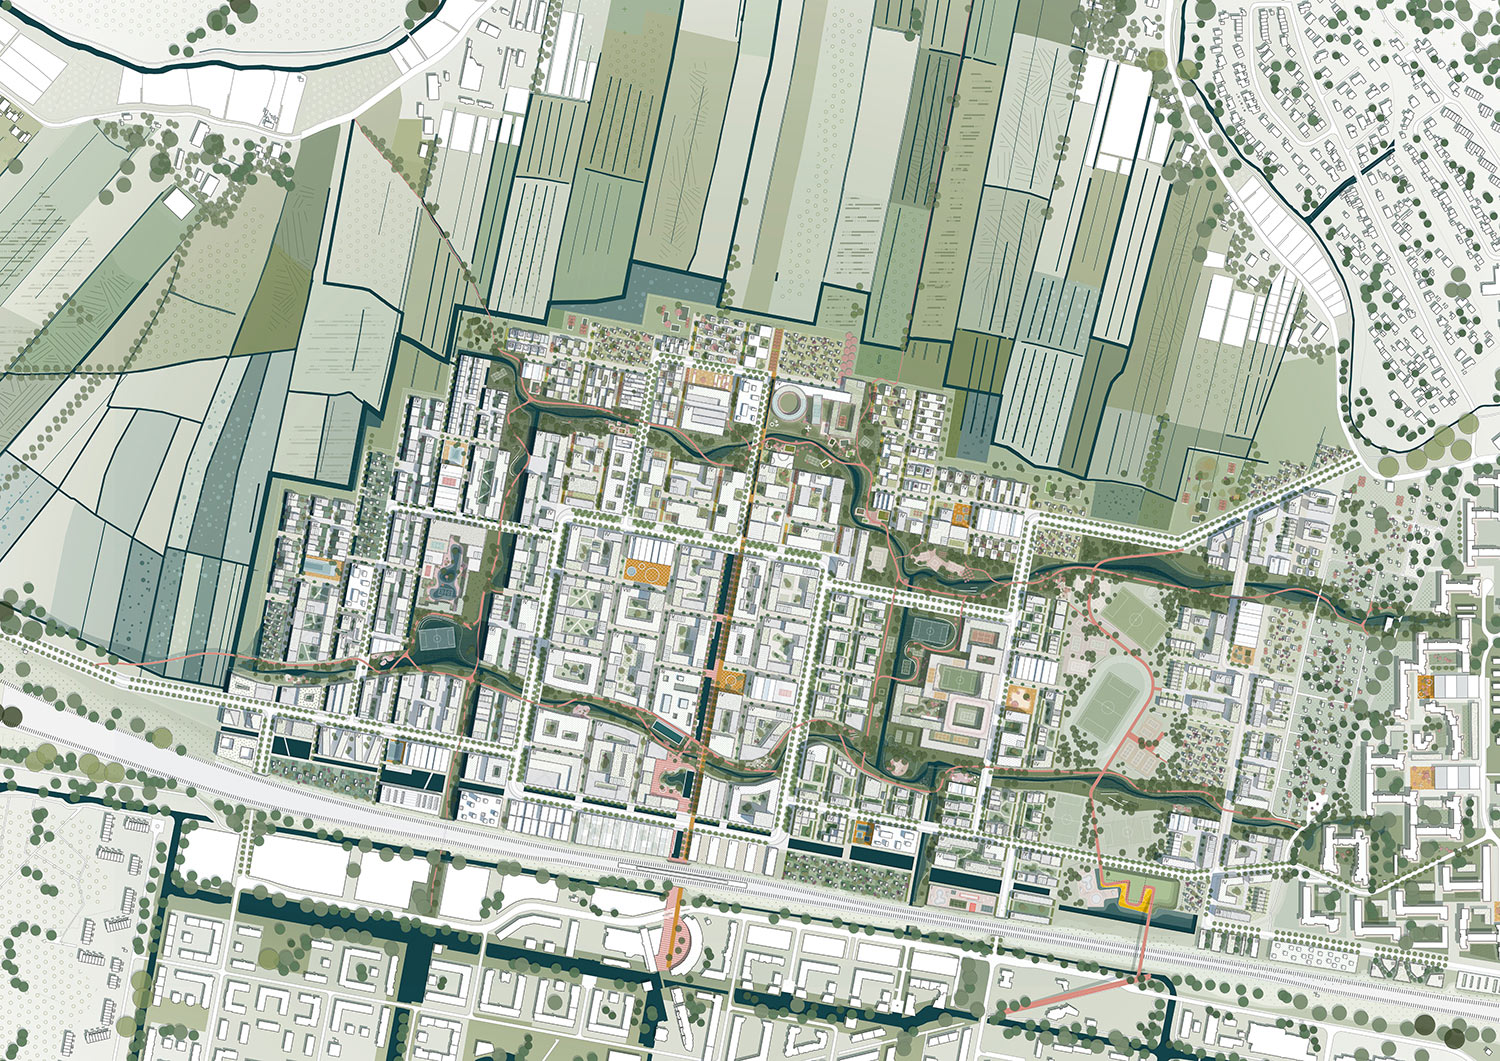 The Connected City - Masterplan 1-2000 © ADEPT KARRES+BRANDS}